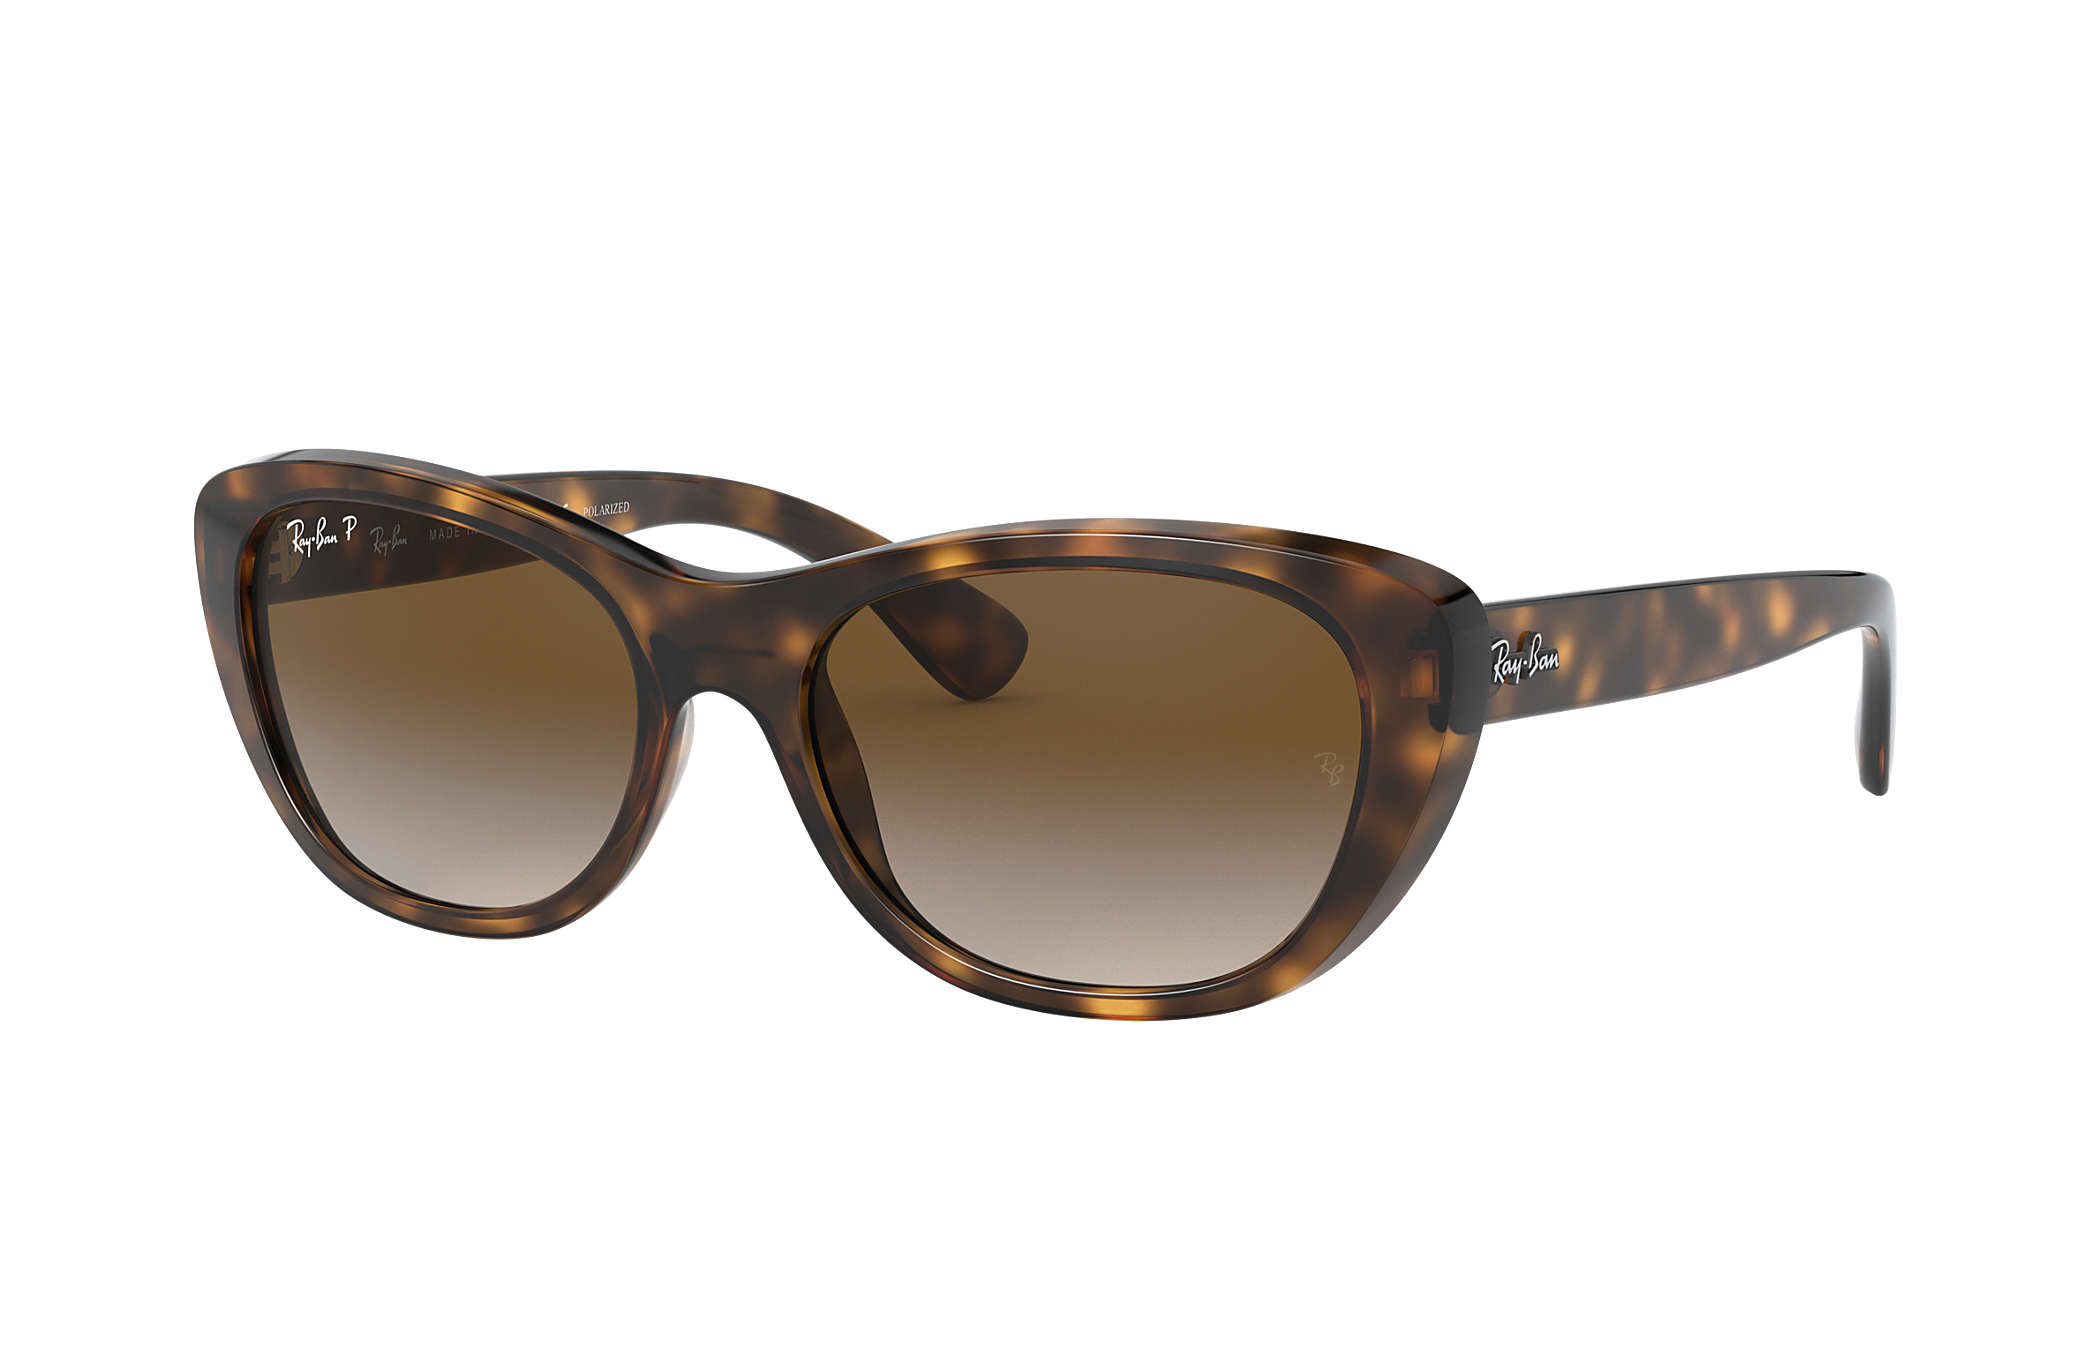 4093ee6407 Ray-Ban RB4068 Tortoise - Nylon - Brown Polarized Lenses ...